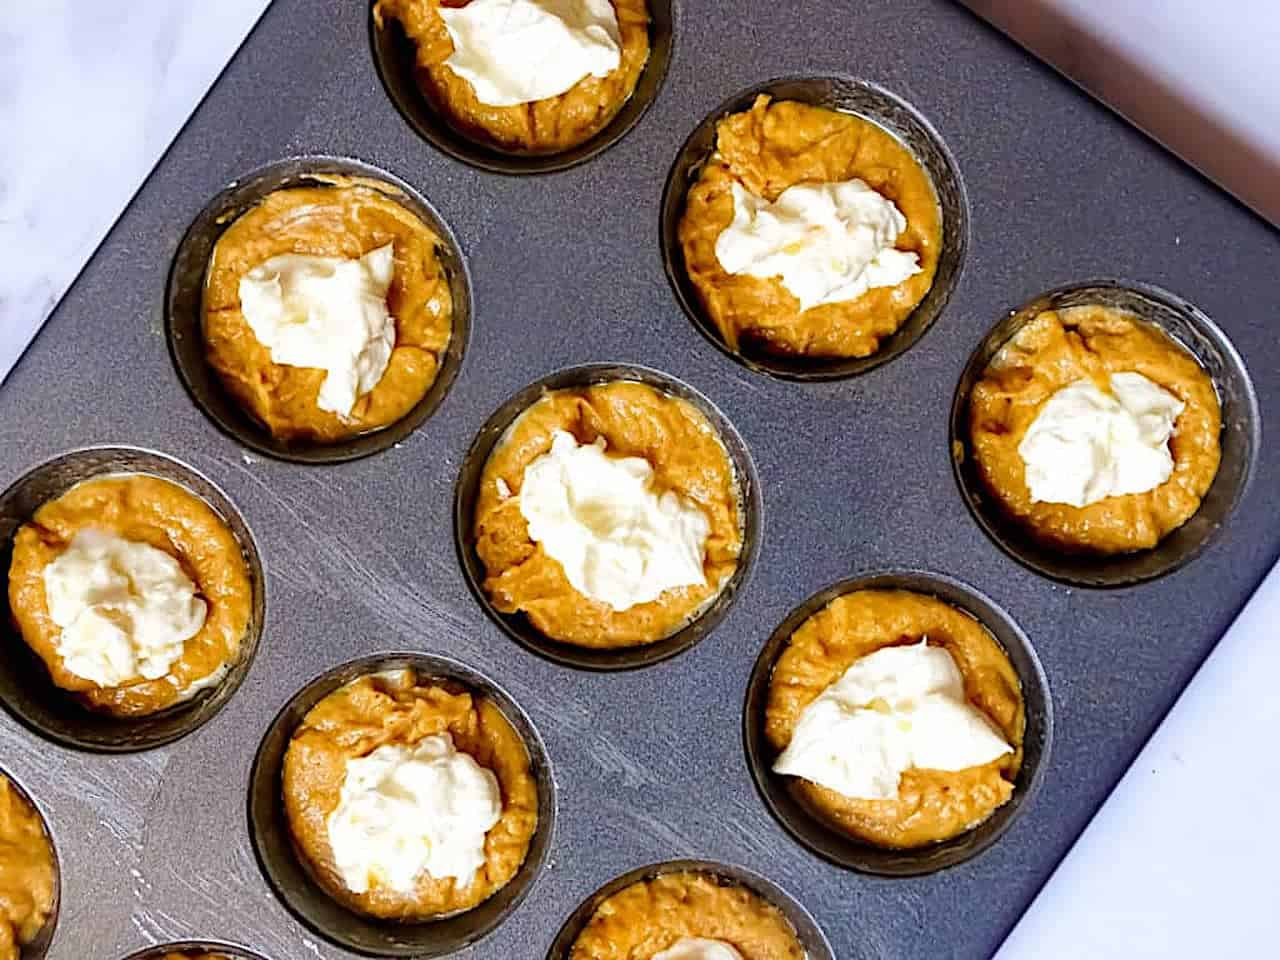 pumpkin muffin batter and cream cheese filling in a muffin tin